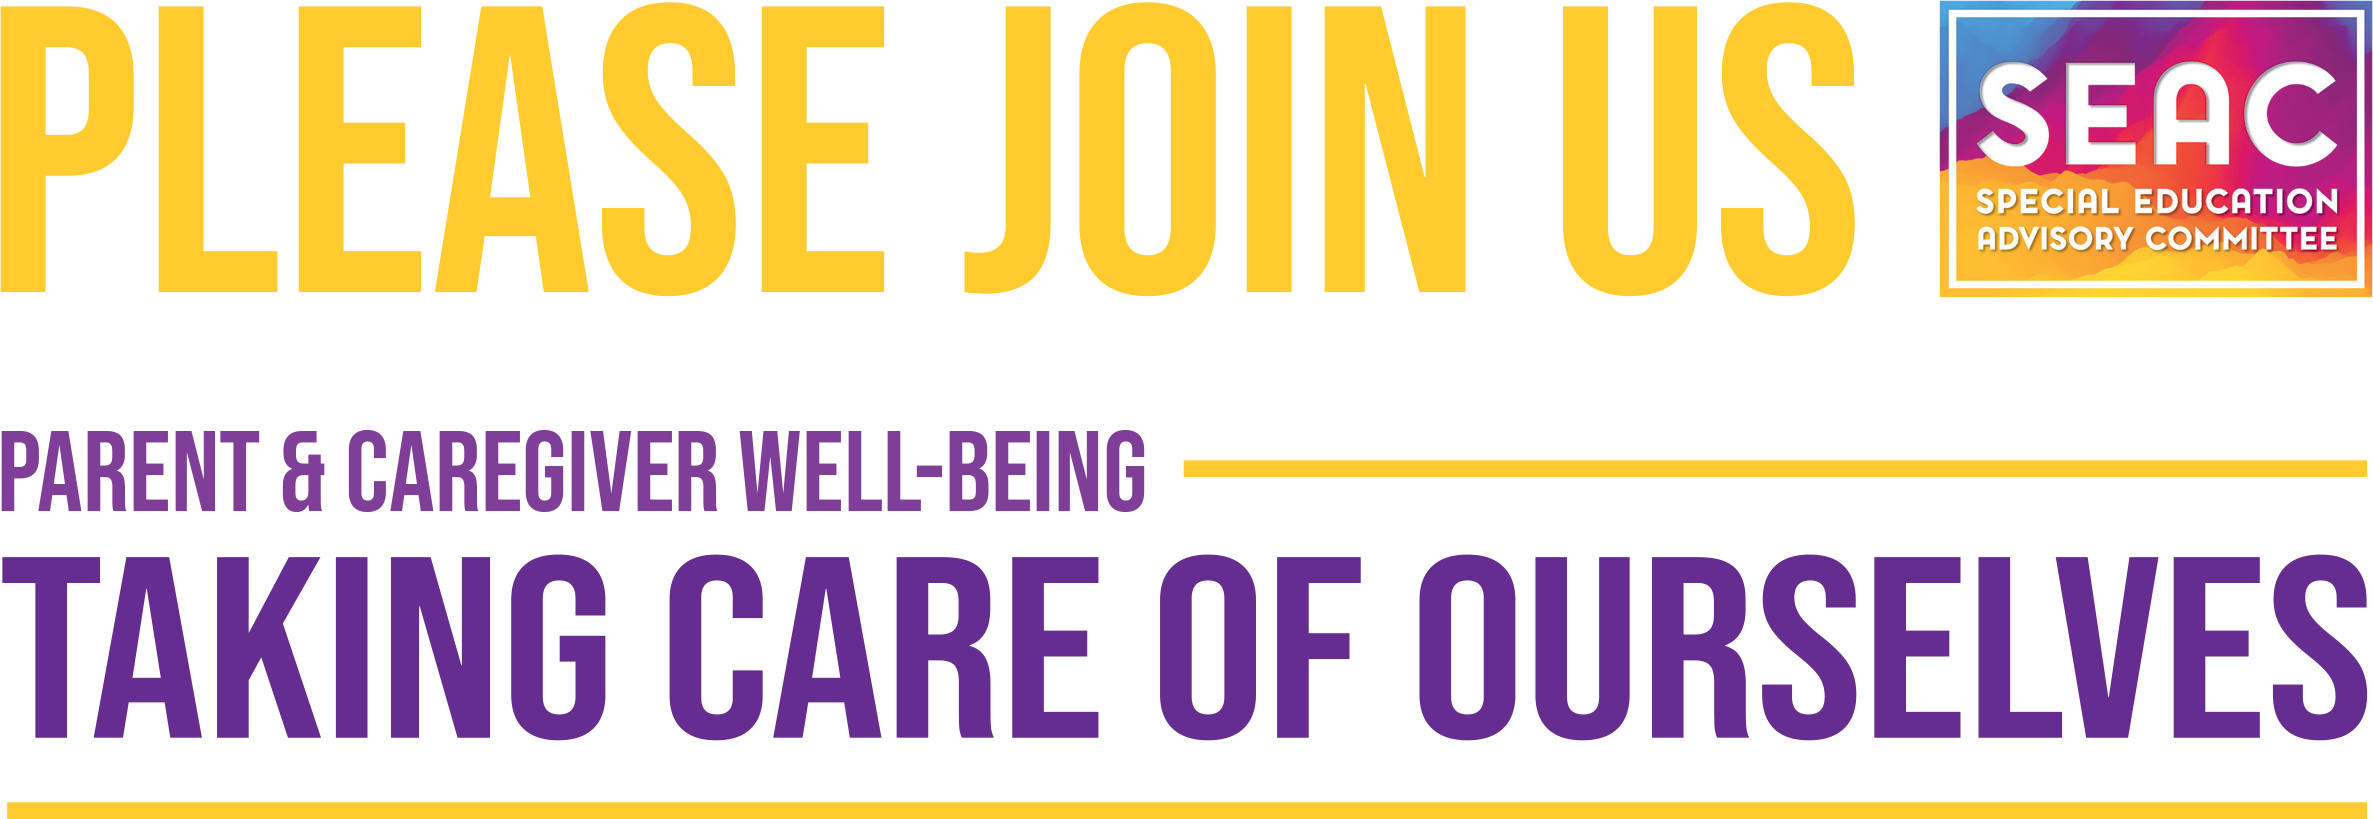 Parent & Care Giver Well Being Header